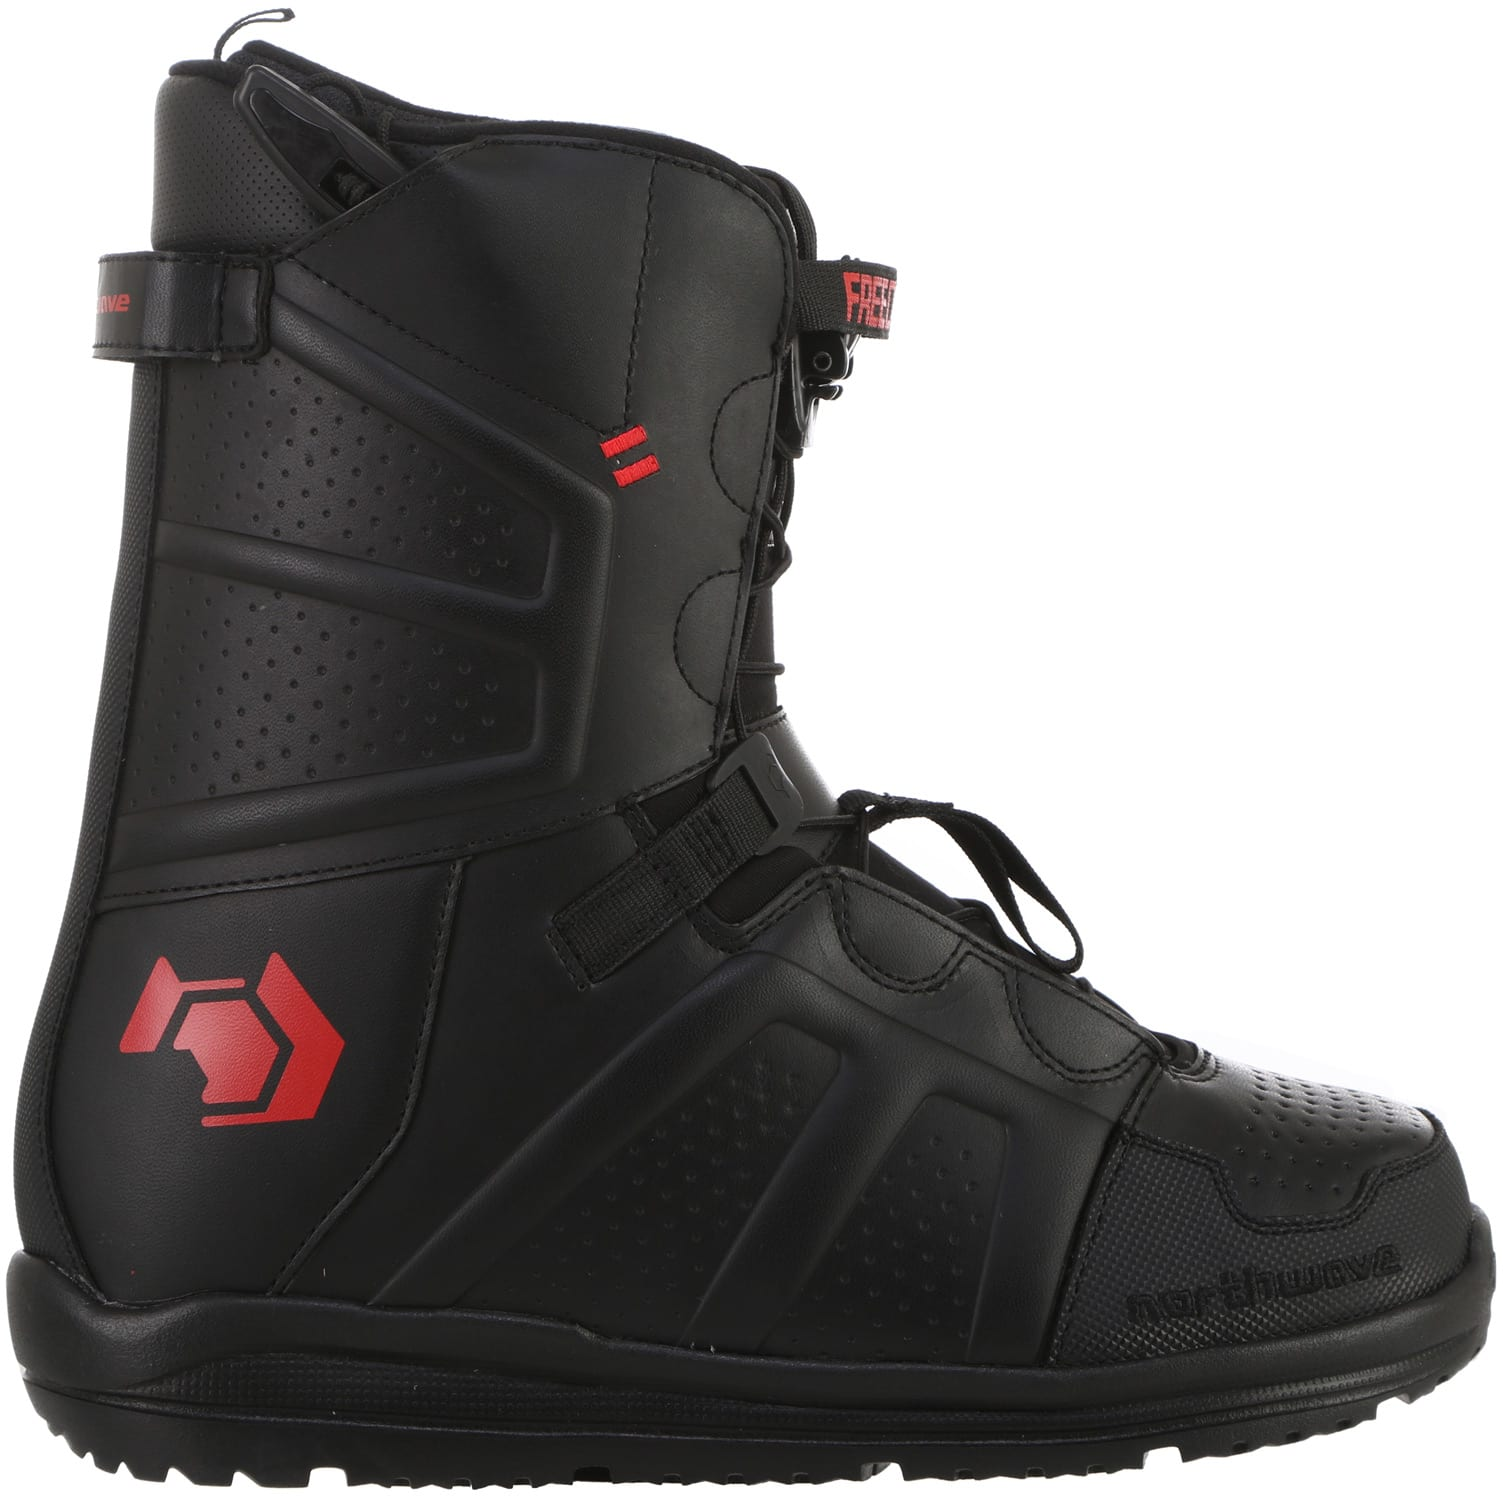 north freedom black singles Free shipping both ways on the north face, black, from our vast selection of styles fast delivery, and 24/7/365 real-person service with a smile click or call 800.